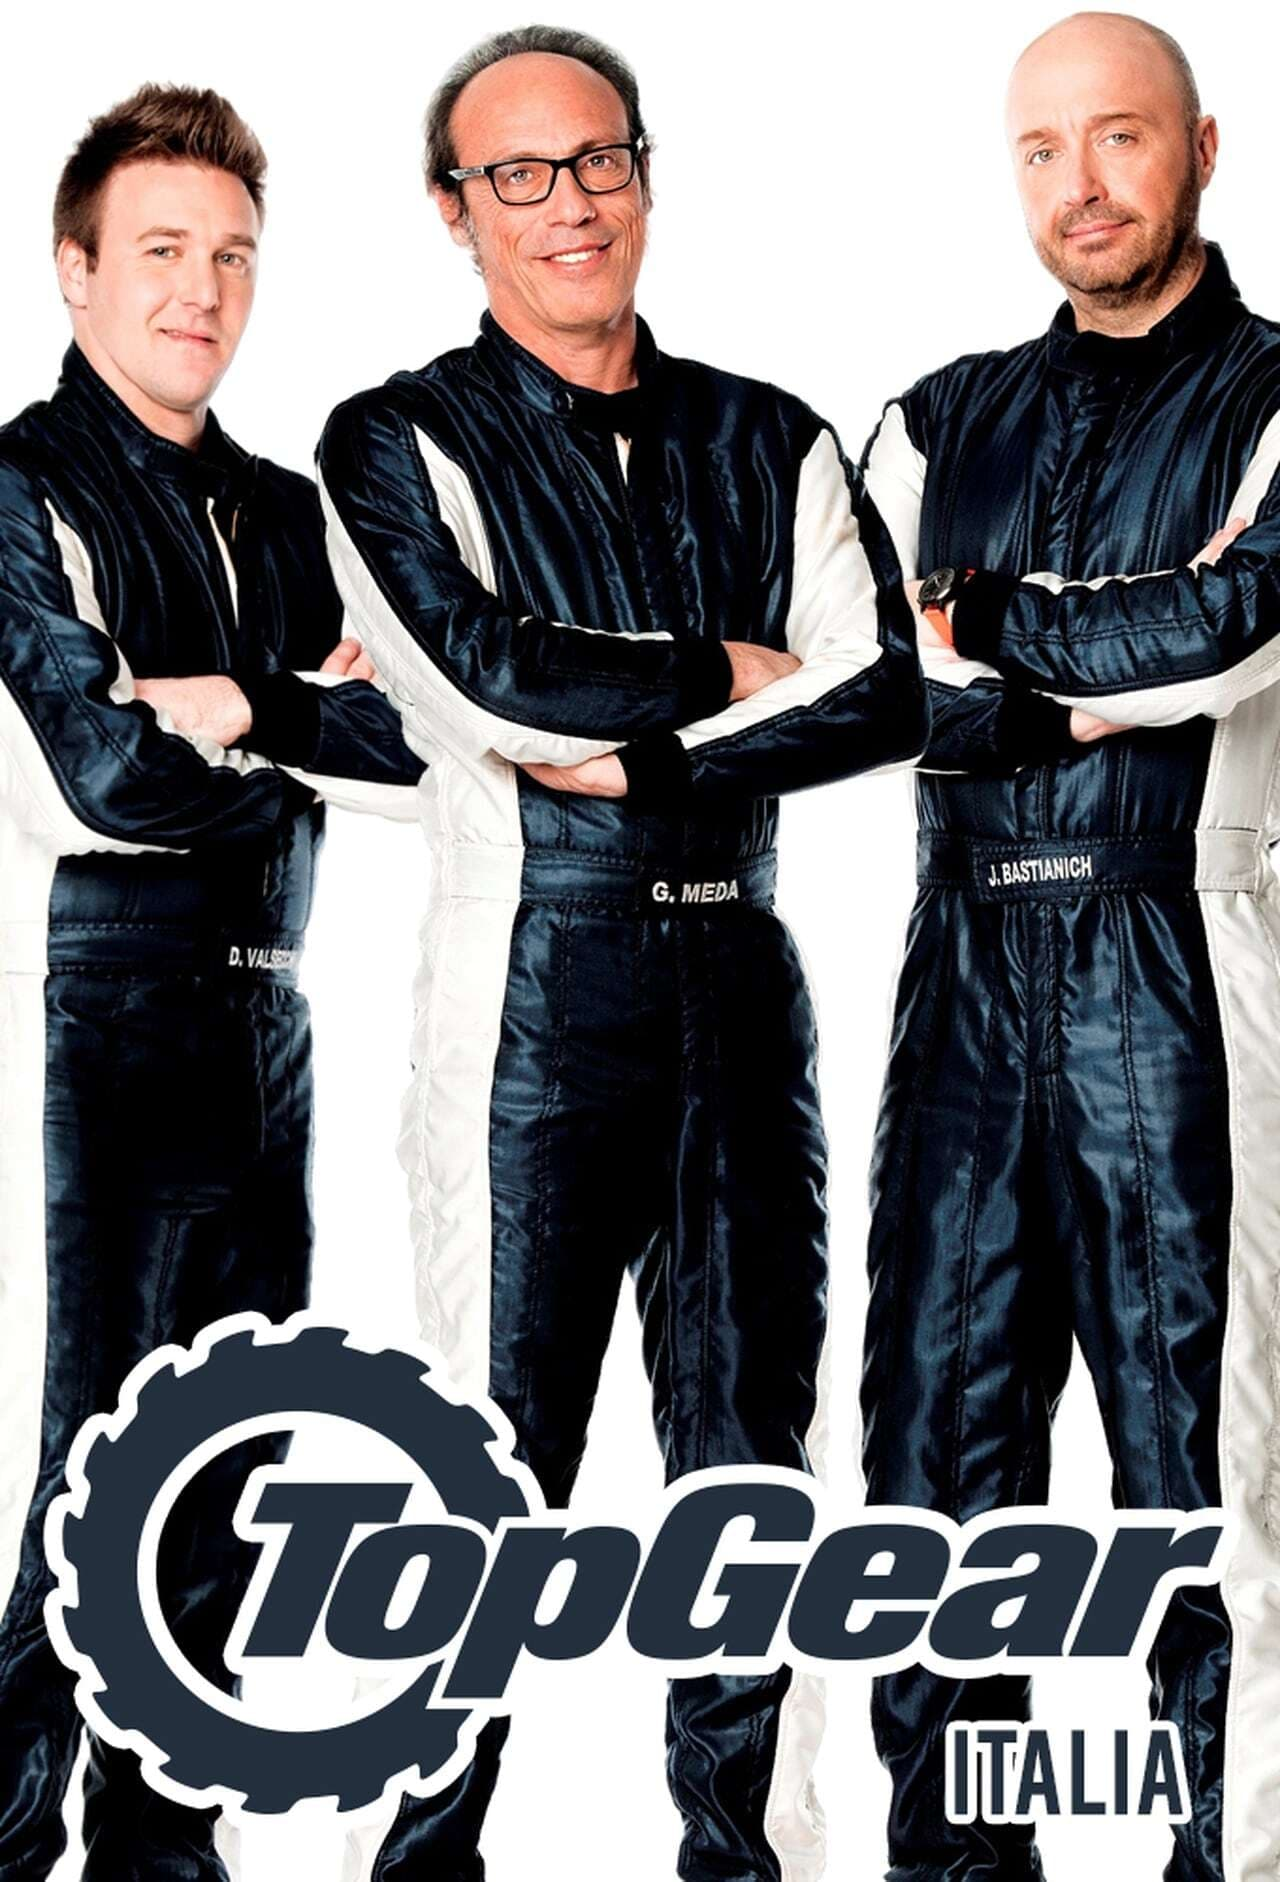 Top Gear Italia TV Shows About Racing